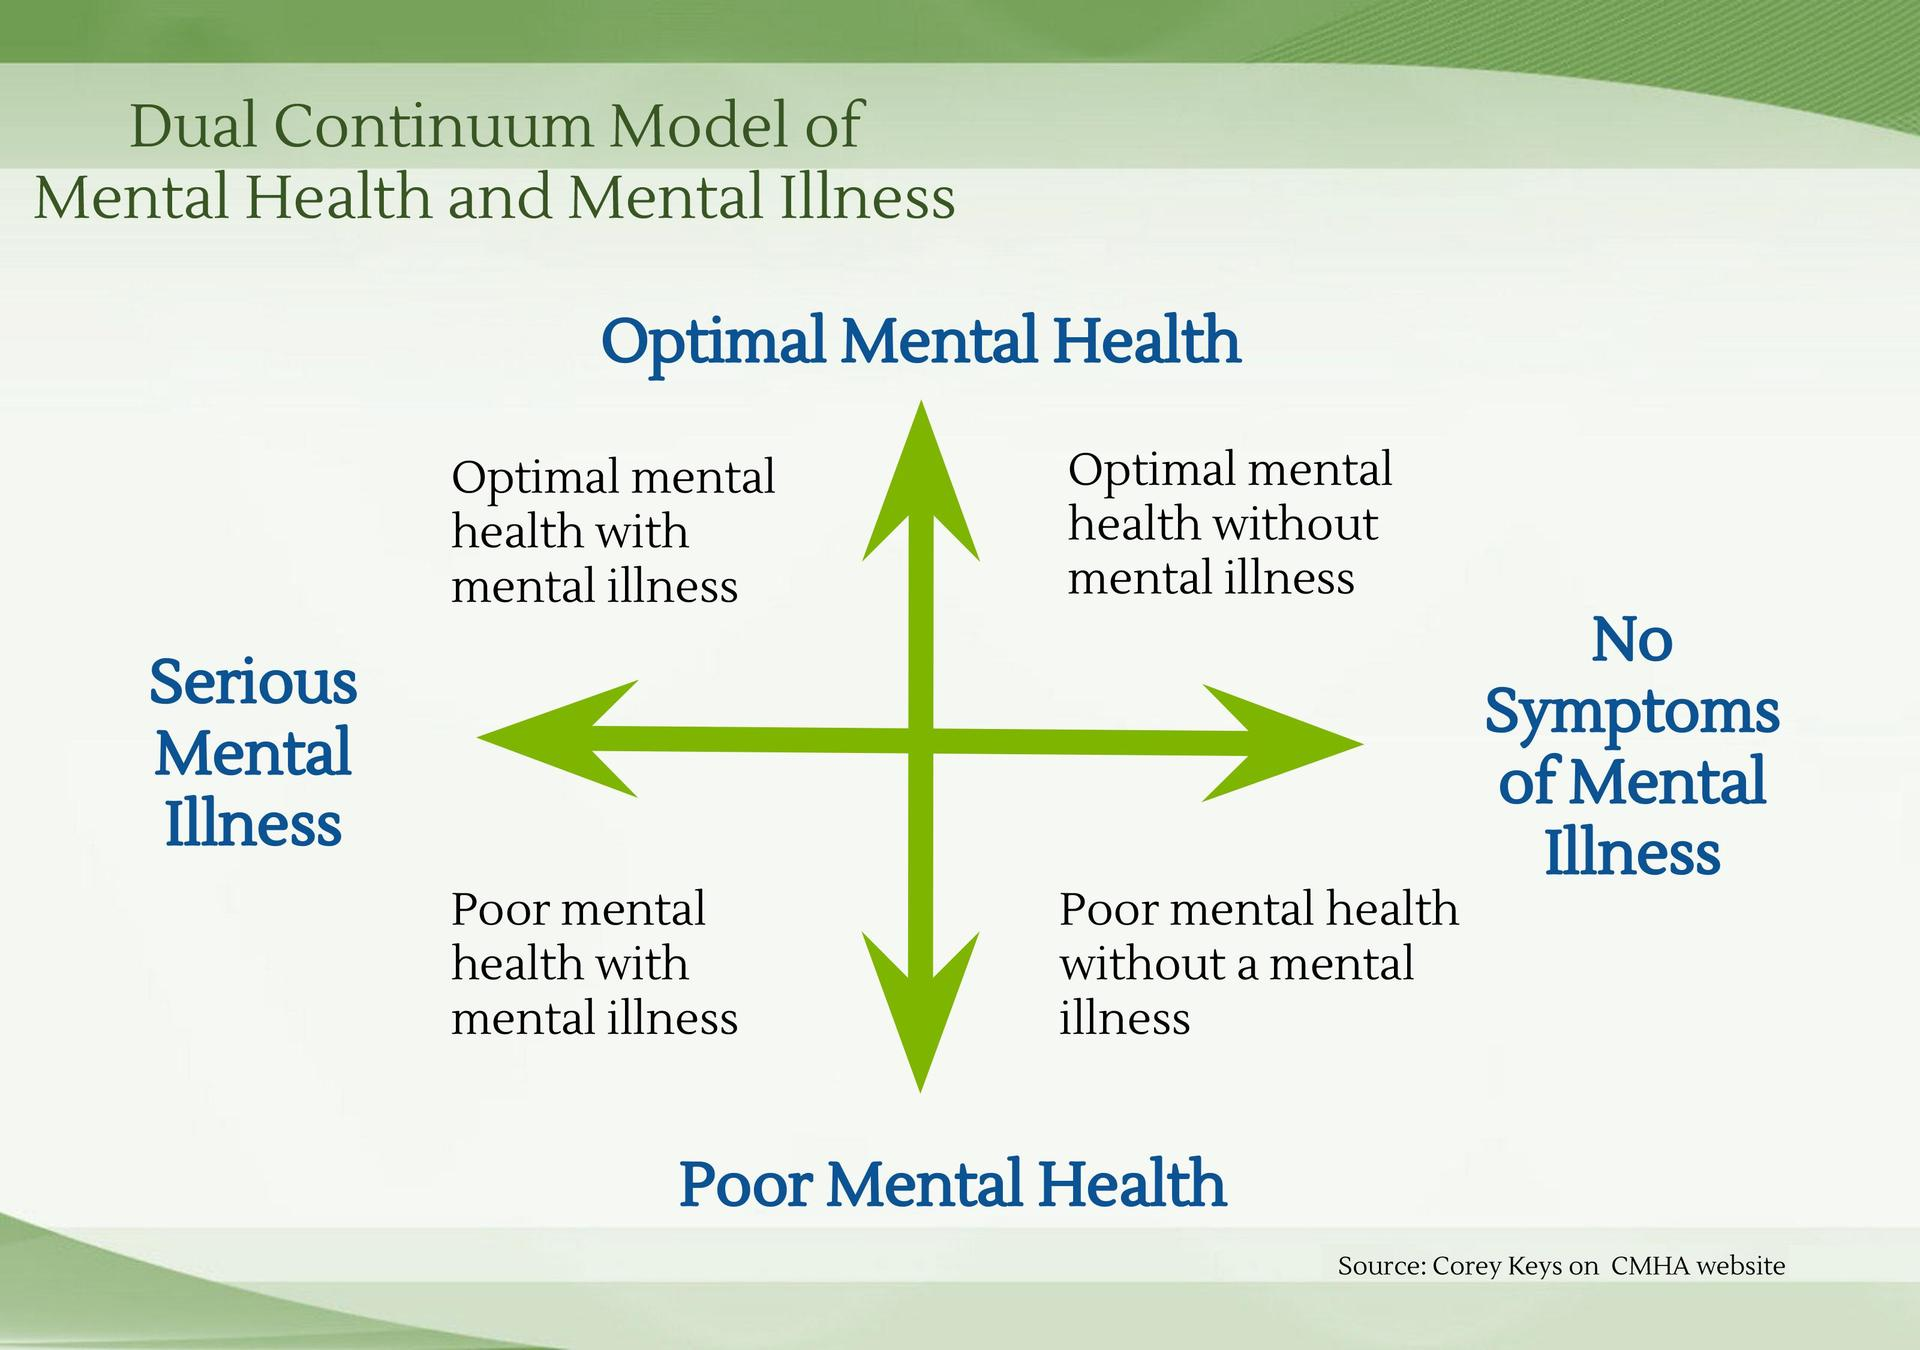 Diagram - Dual Continuum Model of Mental Health and Mental Illness - Source Corey Keys on CMHA Website